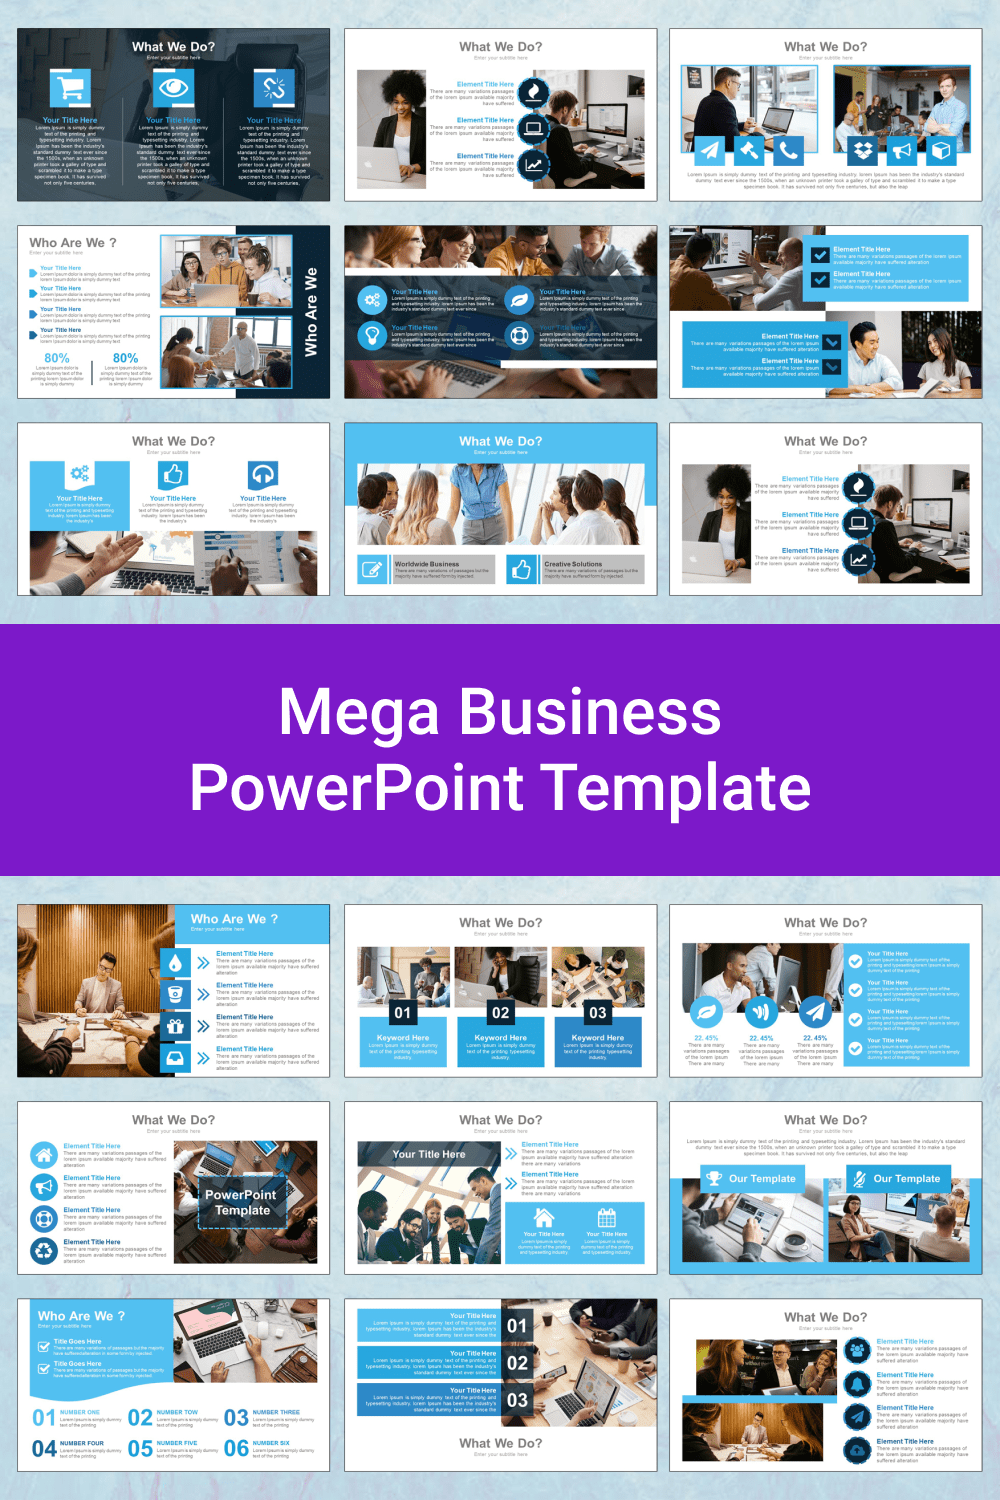 Mega Business PowerPoint Template.